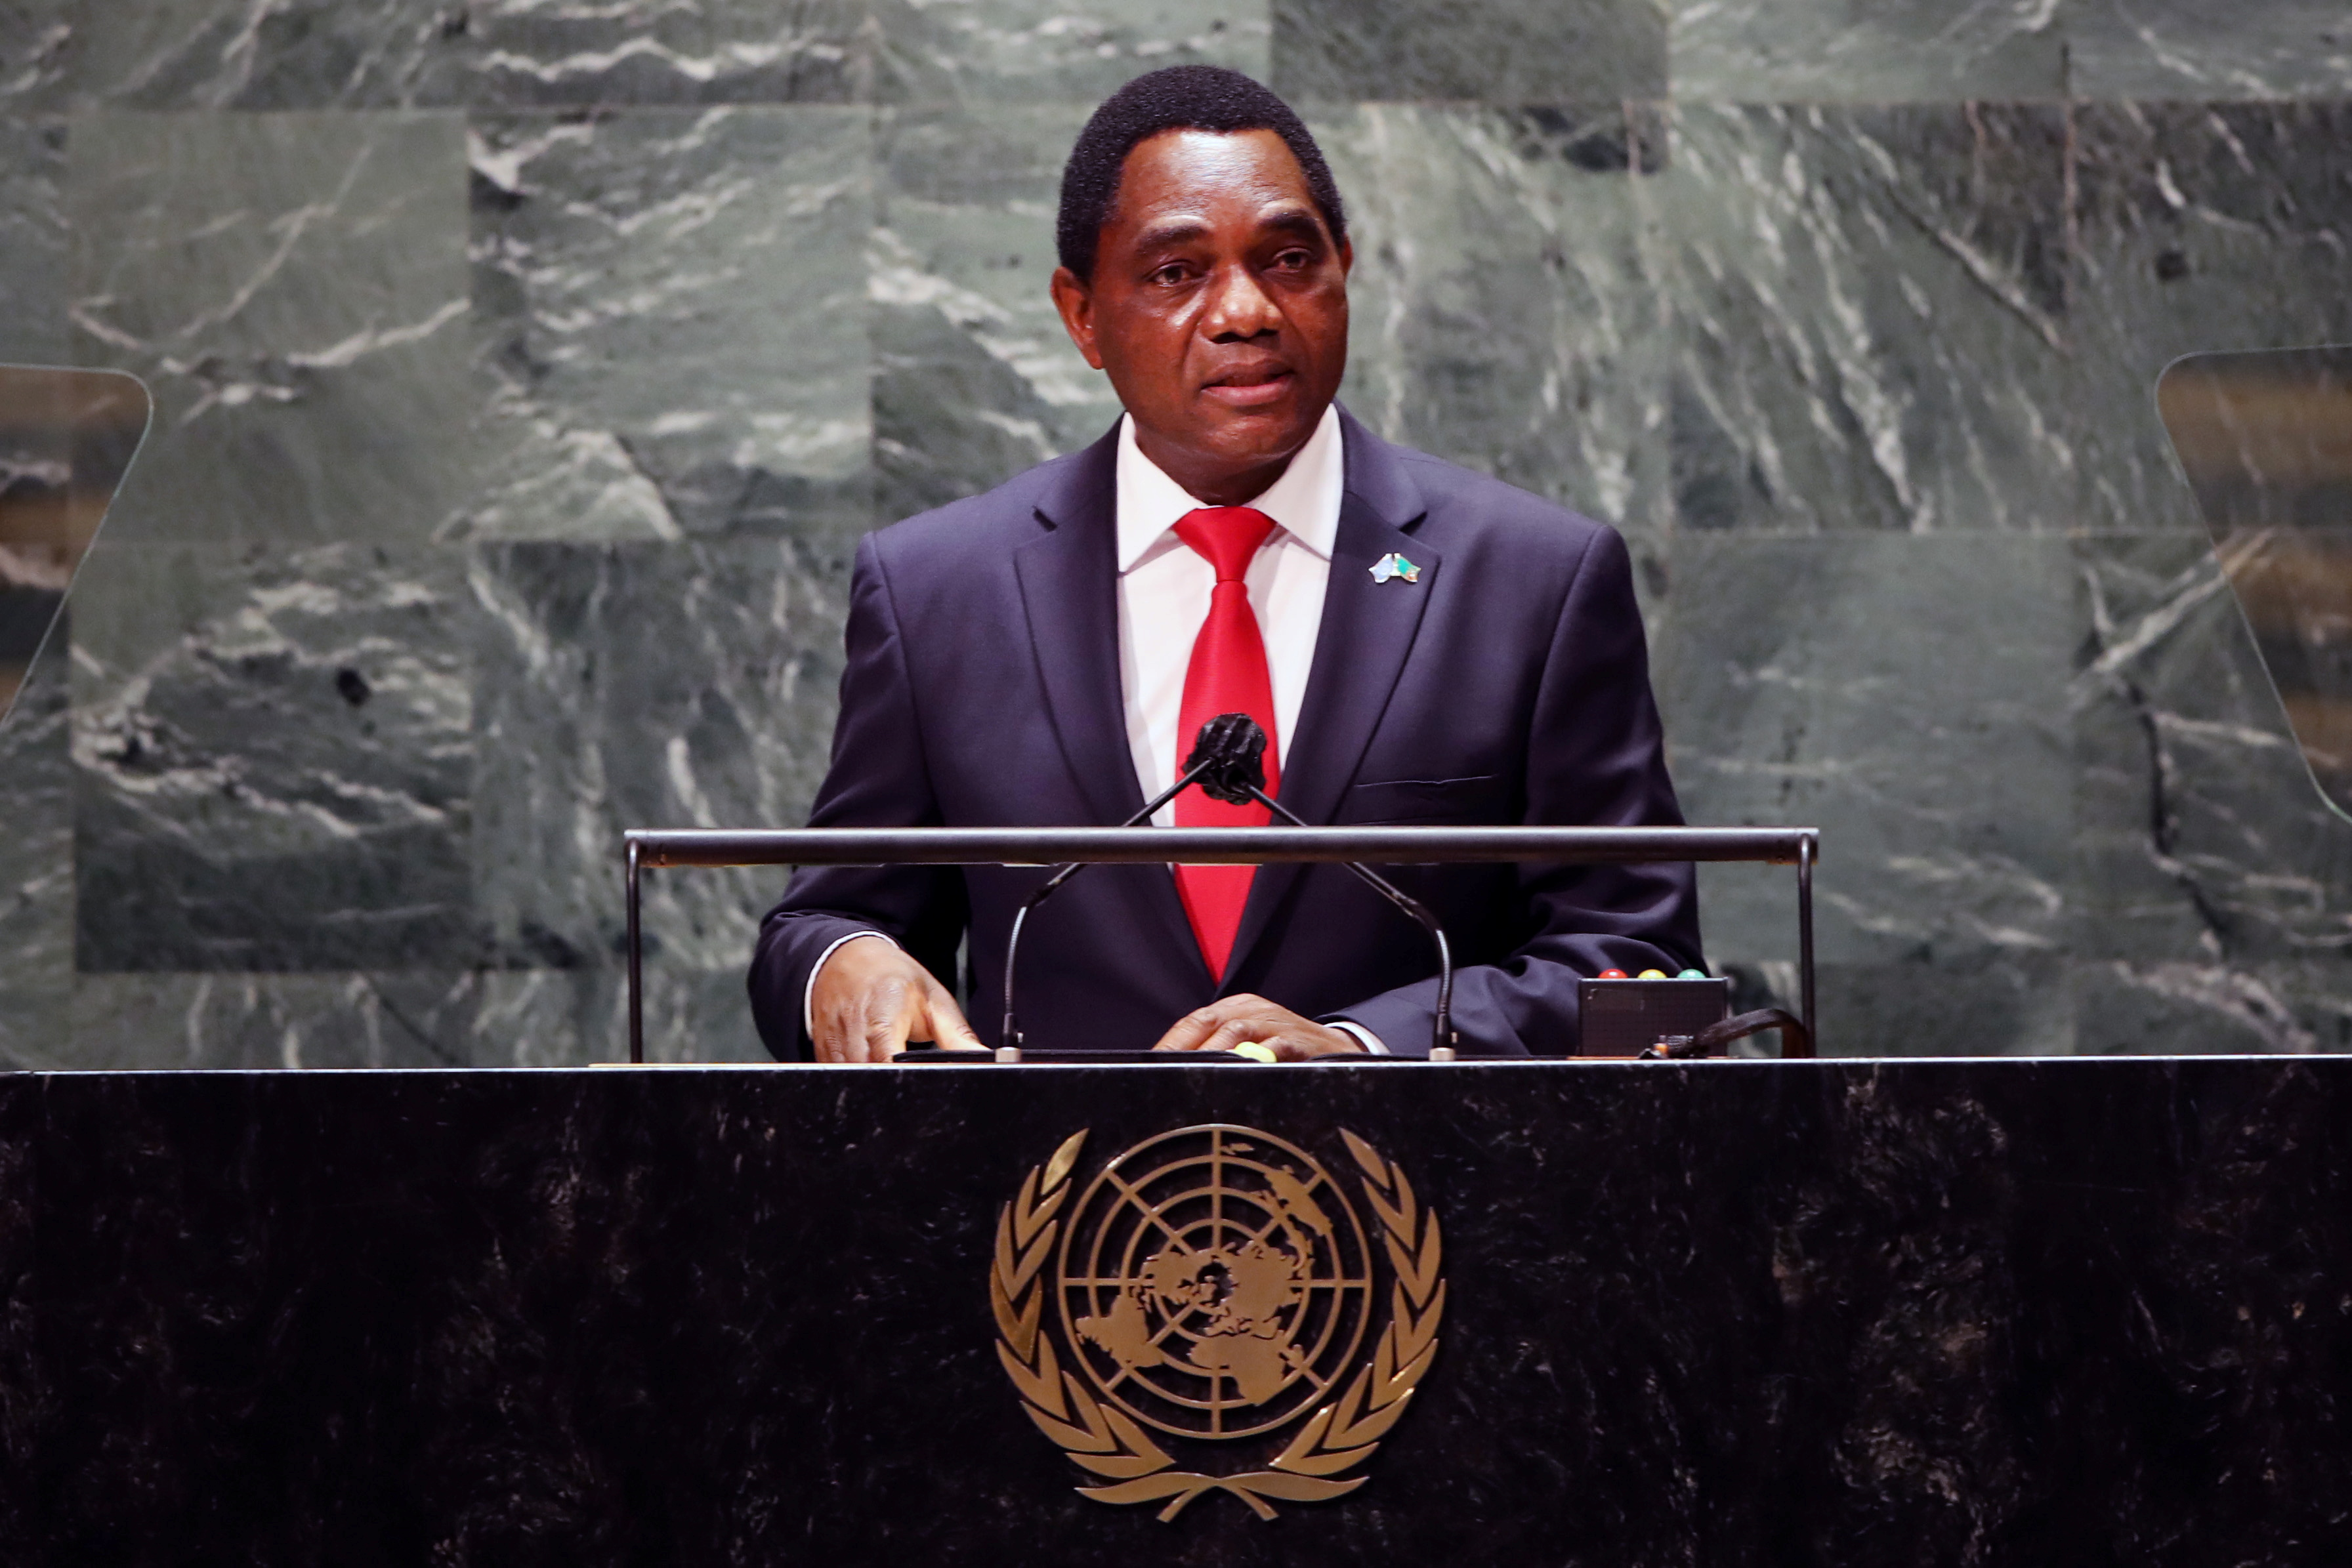 Zambia's President Hakainde Hichilema addresses the 76th Session of the United Nations General Assembly at U.N. headquarters in New York, U.S. on September 21, 2021.  Spencer Platt/Pool via REUTERS